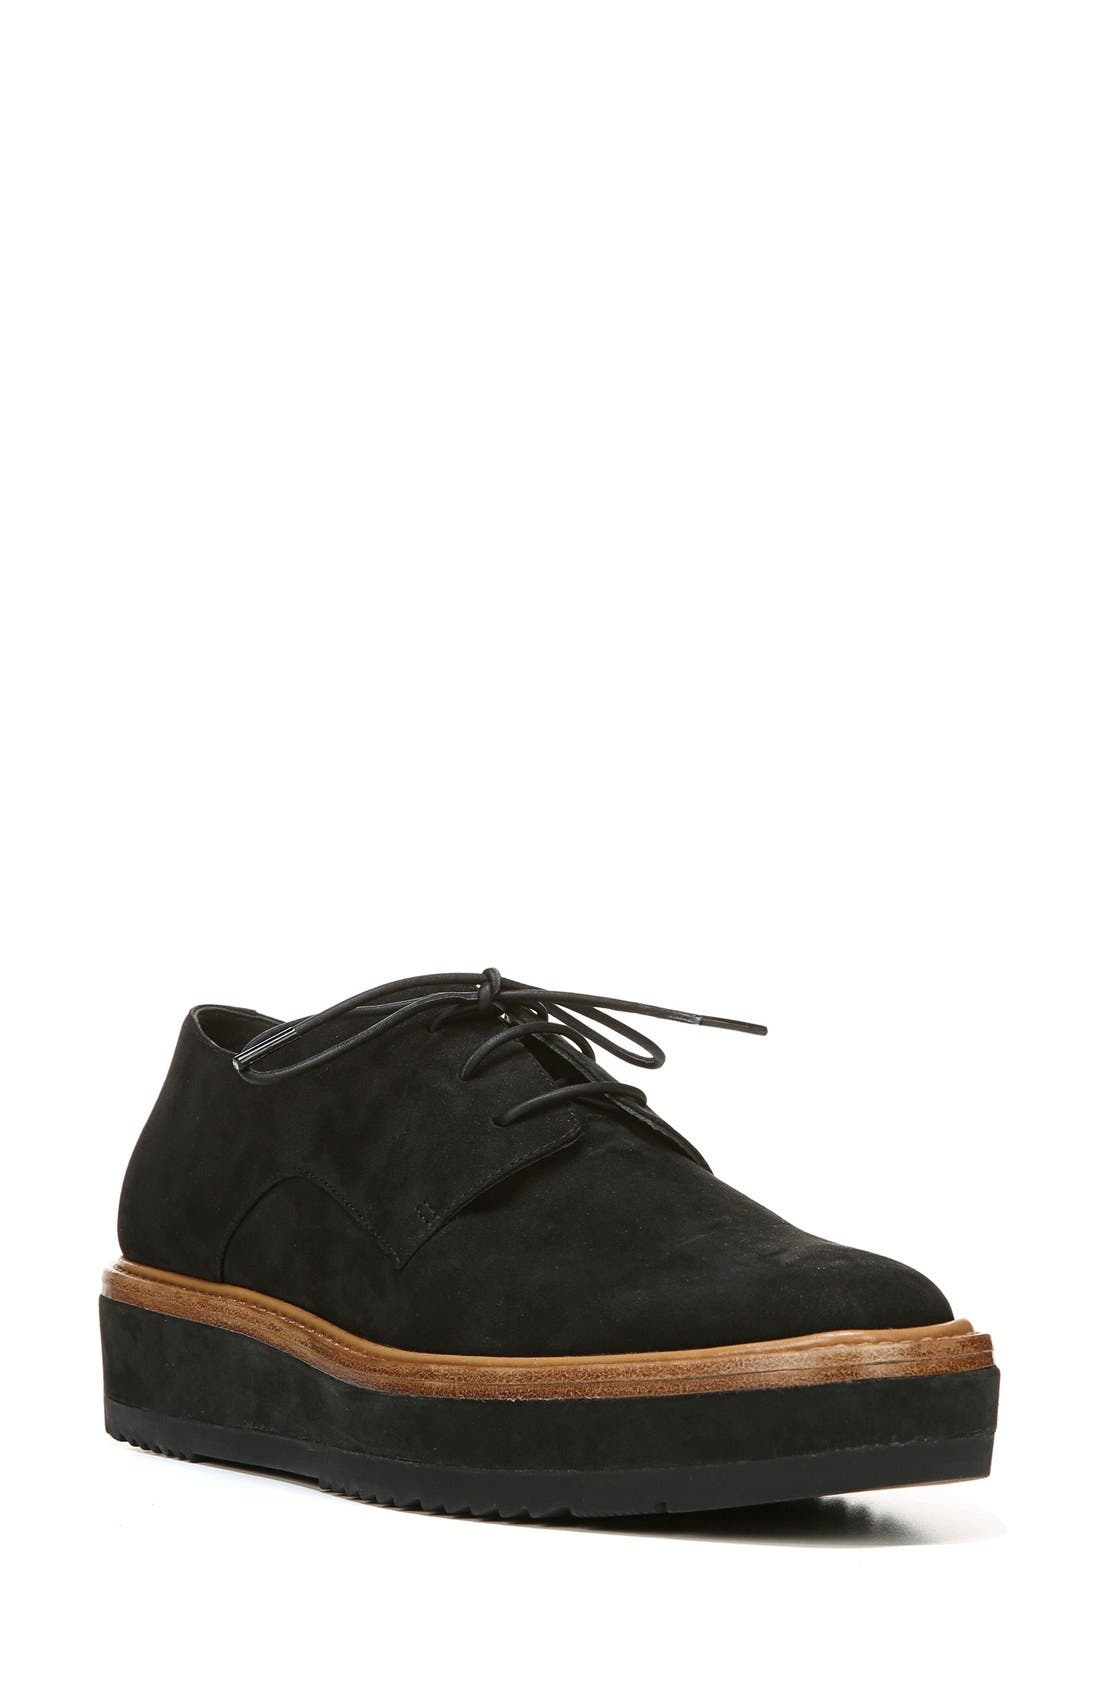 Tanner Platform Oxford,                             Main thumbnail 1, color,                             003